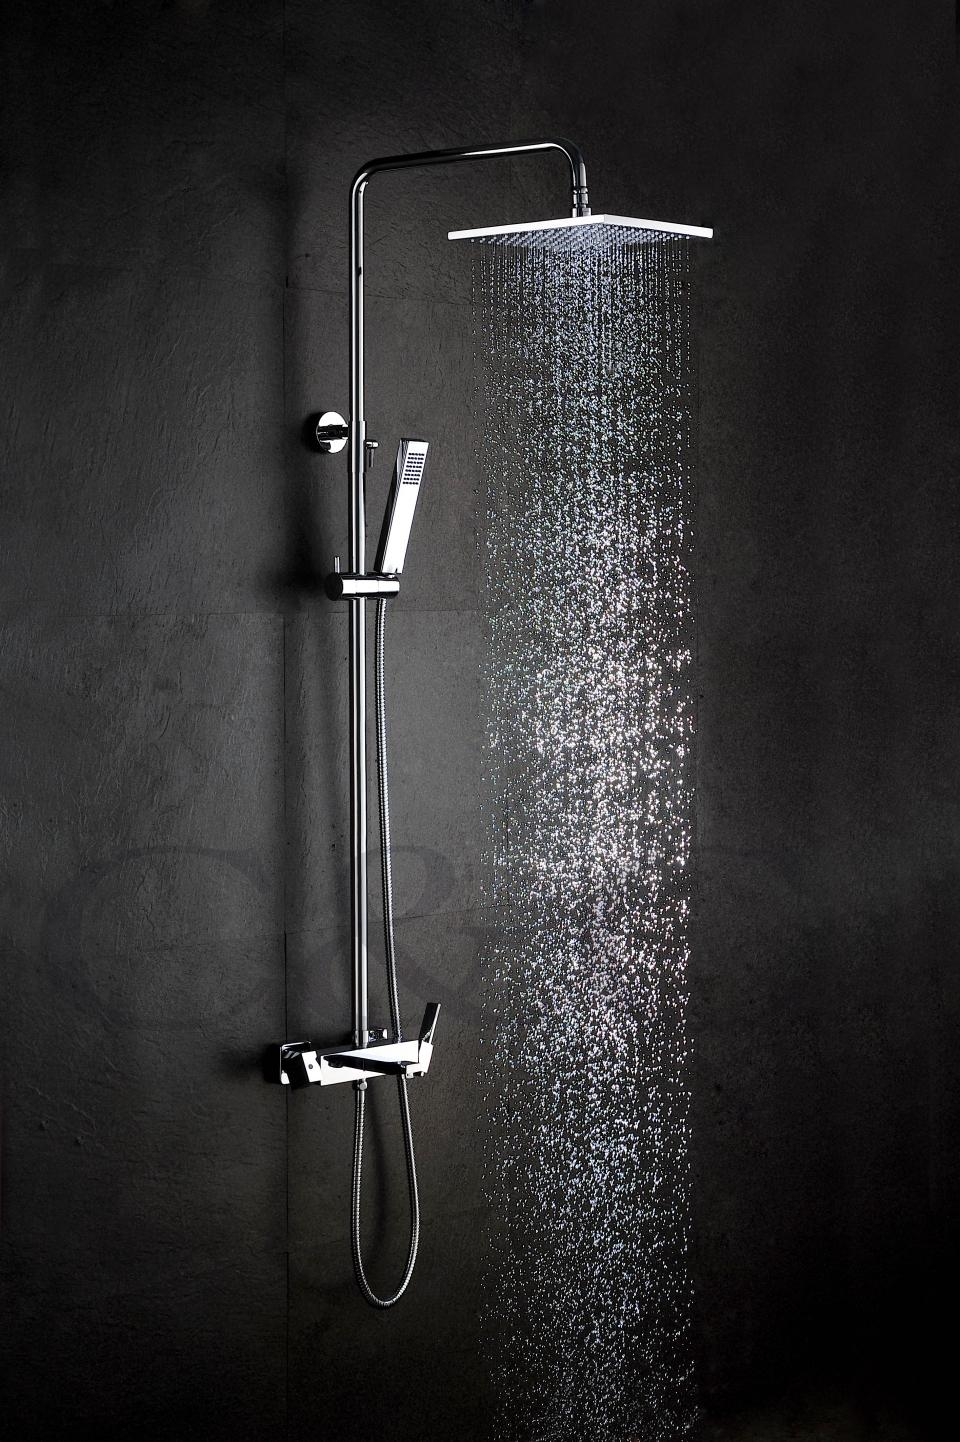 2018 10 Inch Air Saving Shower Head And Brass Bath Tub Spout Solid ...